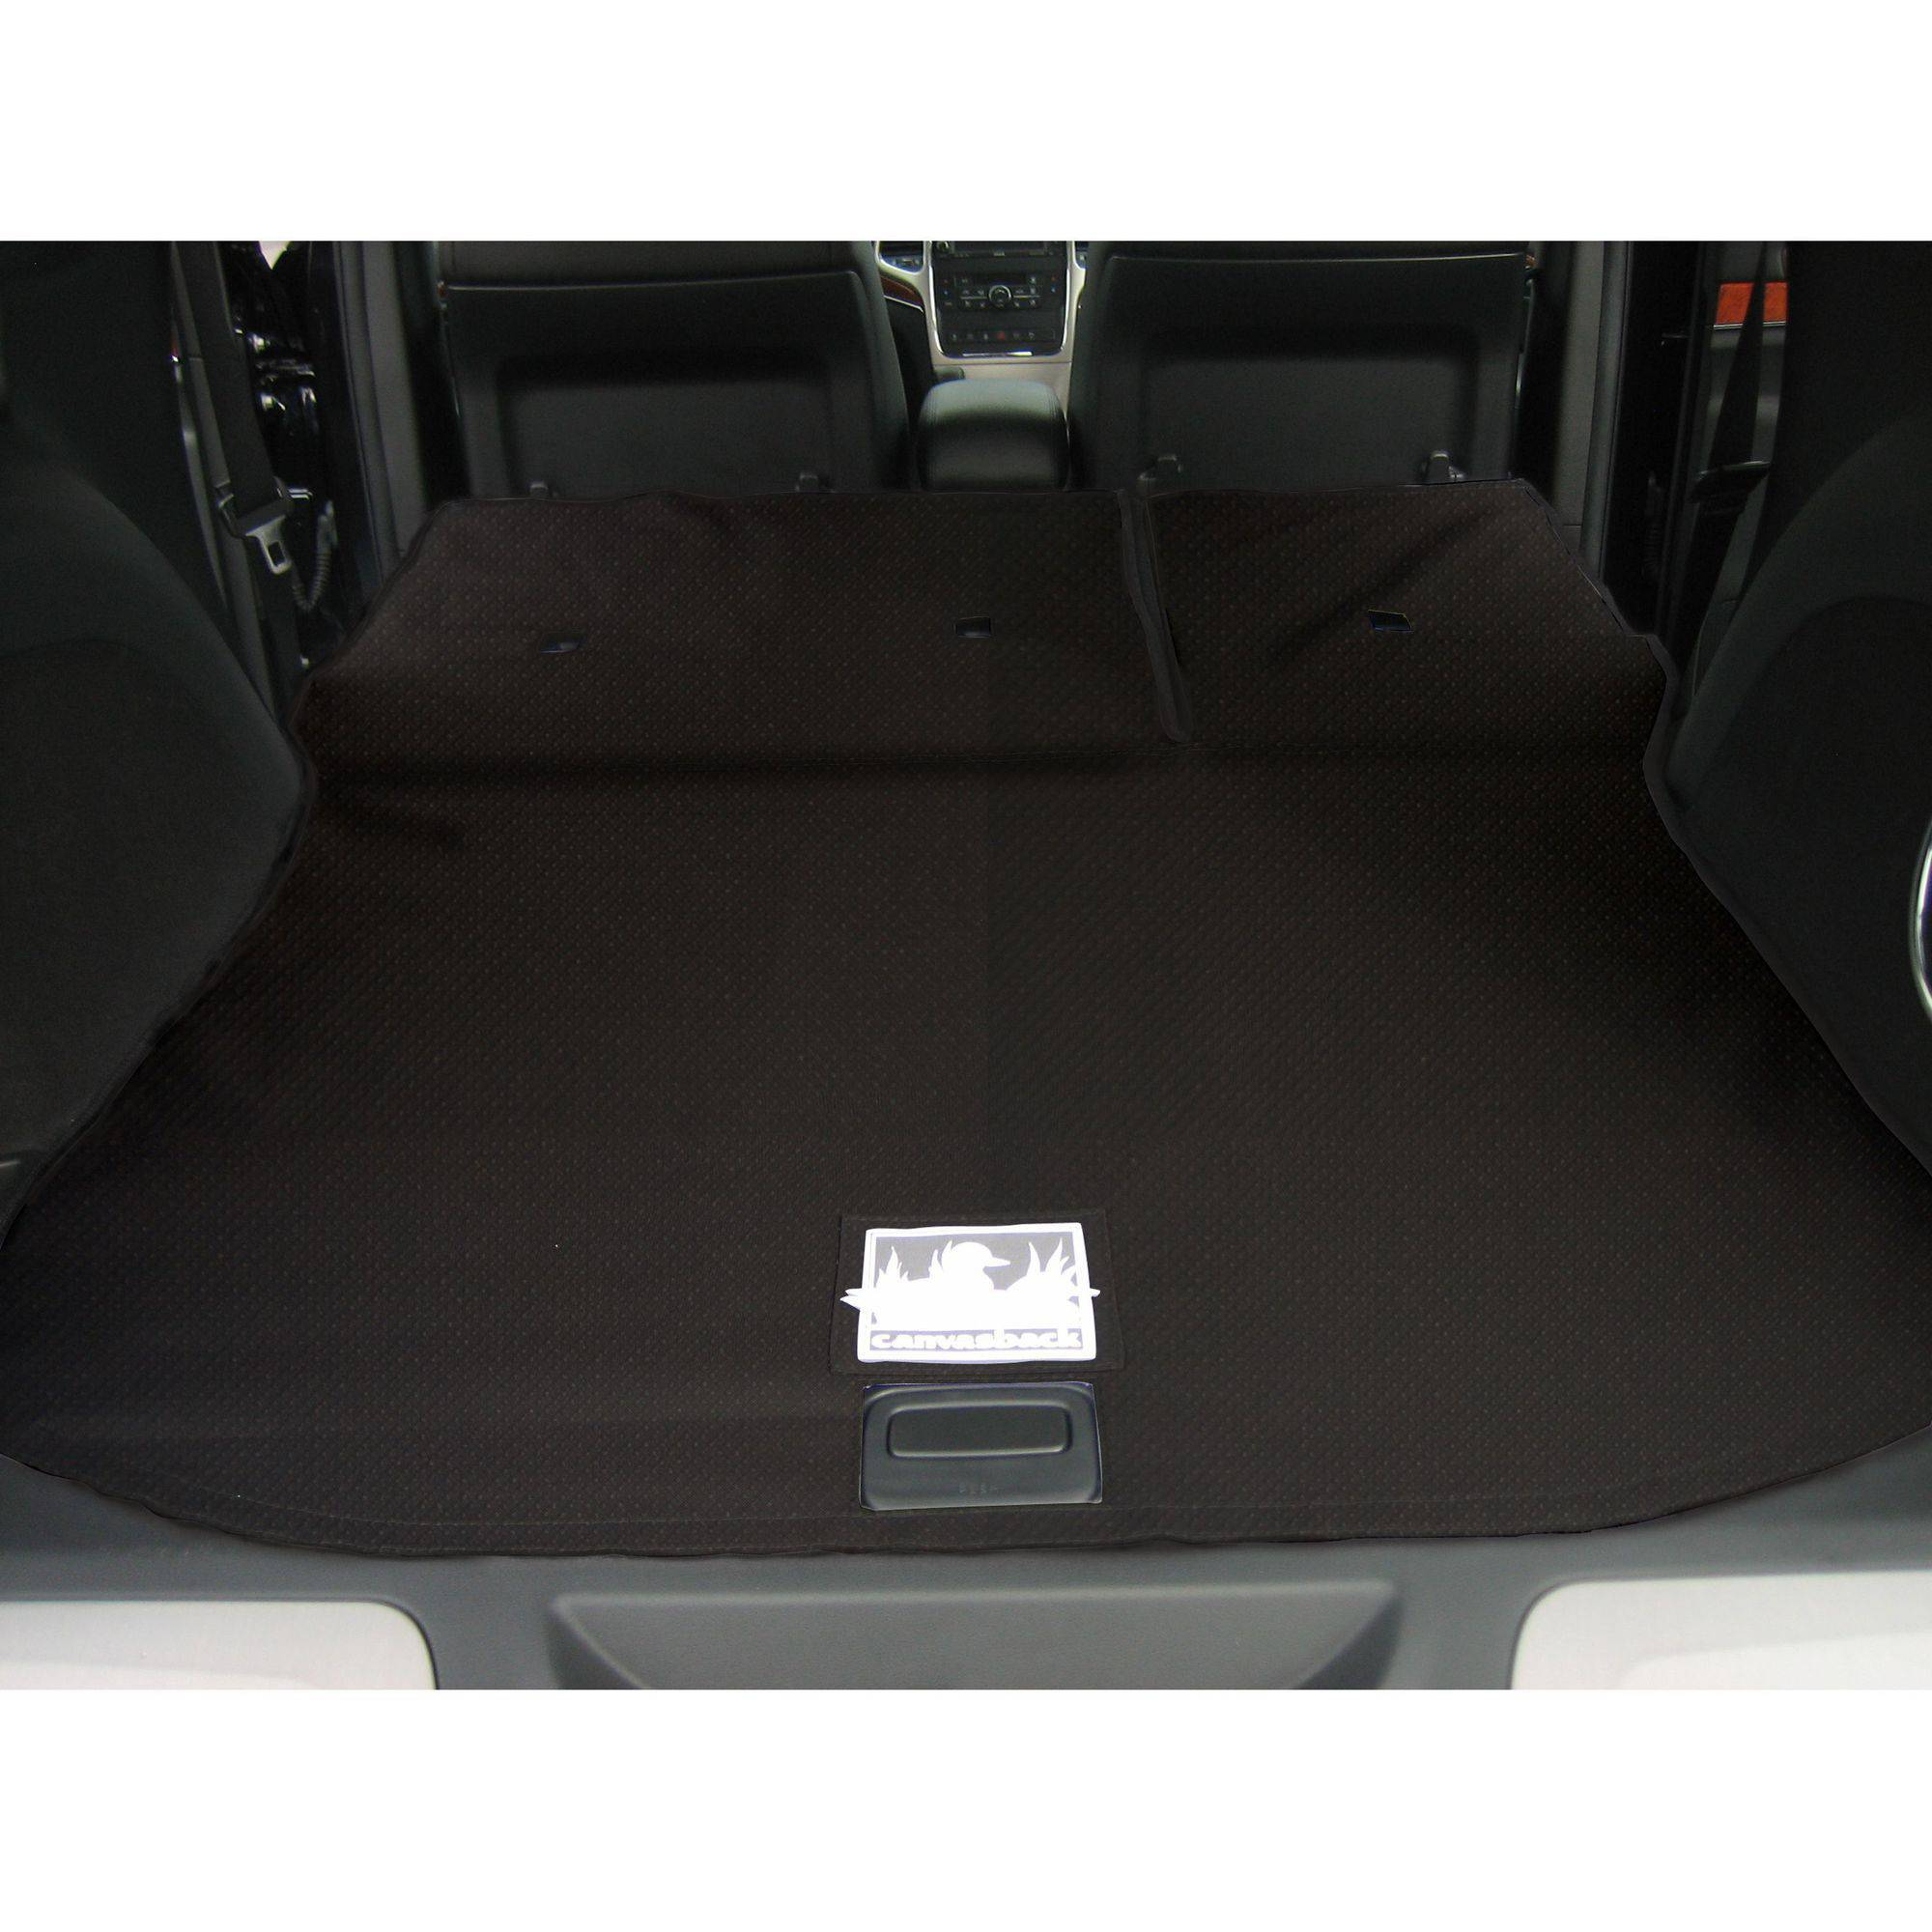 Captivating Canvasback Cargo Liner, Jeep Grand Cherokee 2011 2016, Black, 1 Piece    Walmart.com